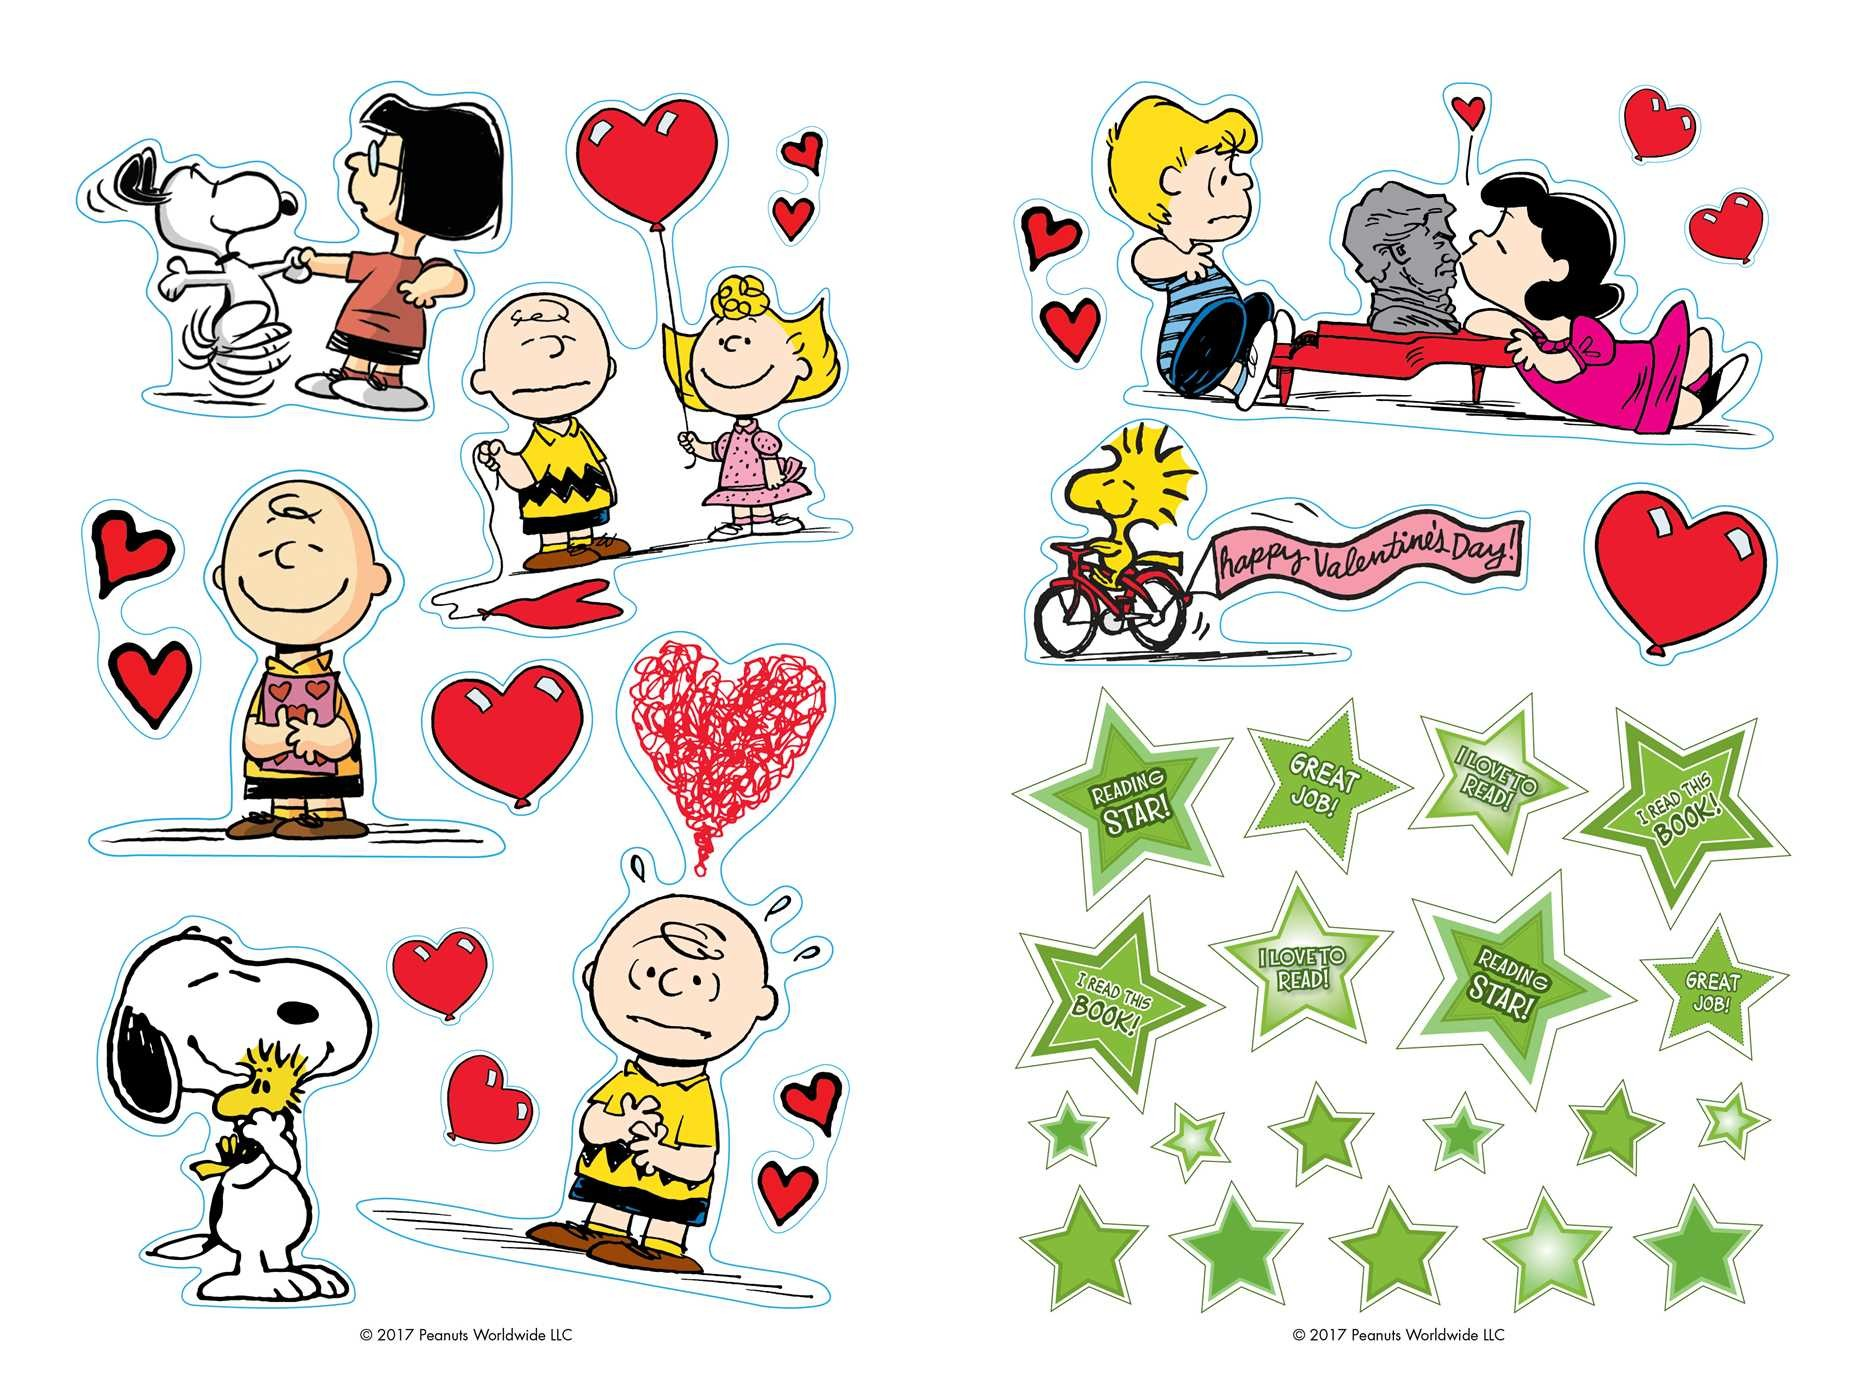 Happy valentines day charlie brown 9781534405028.in01